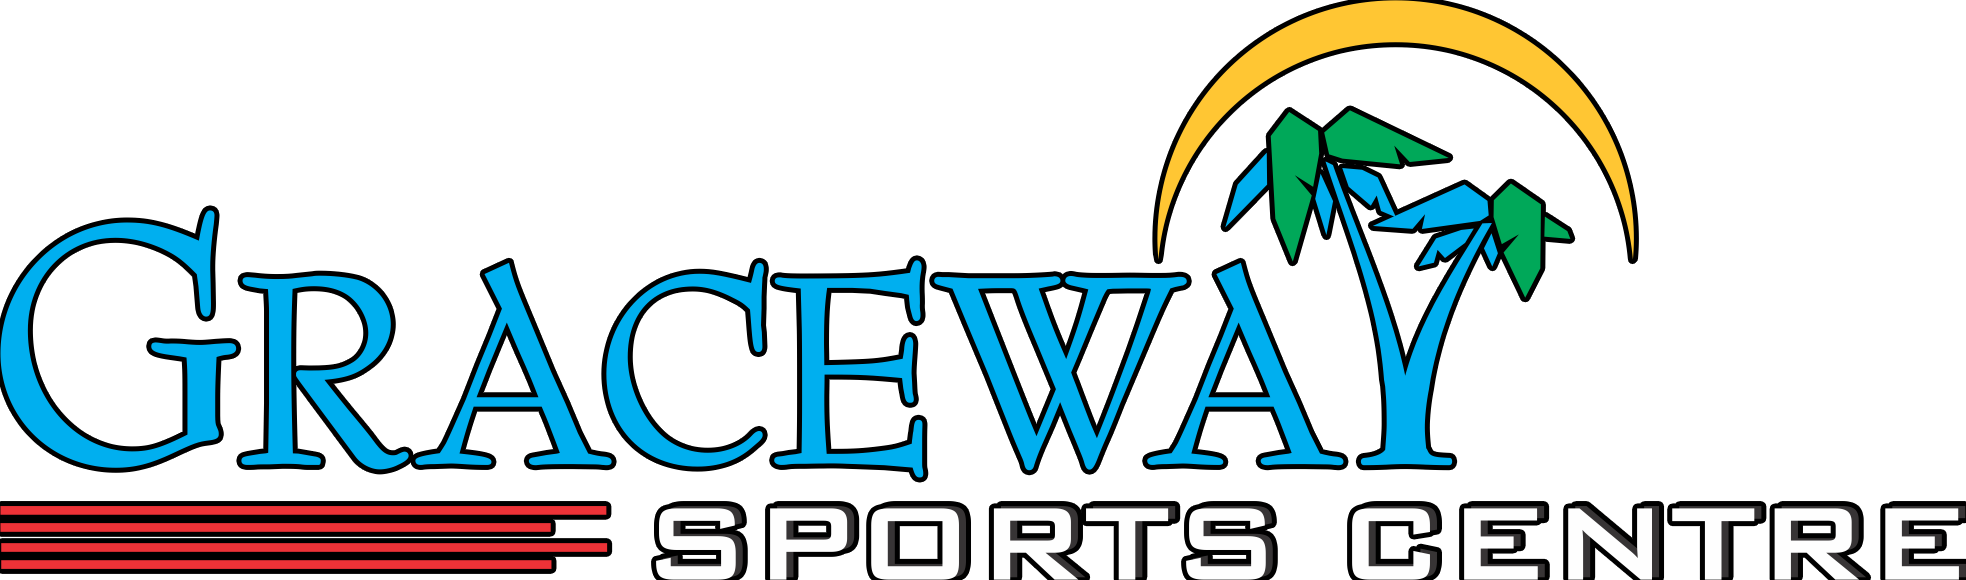 Soccer | Graceway Sports Center